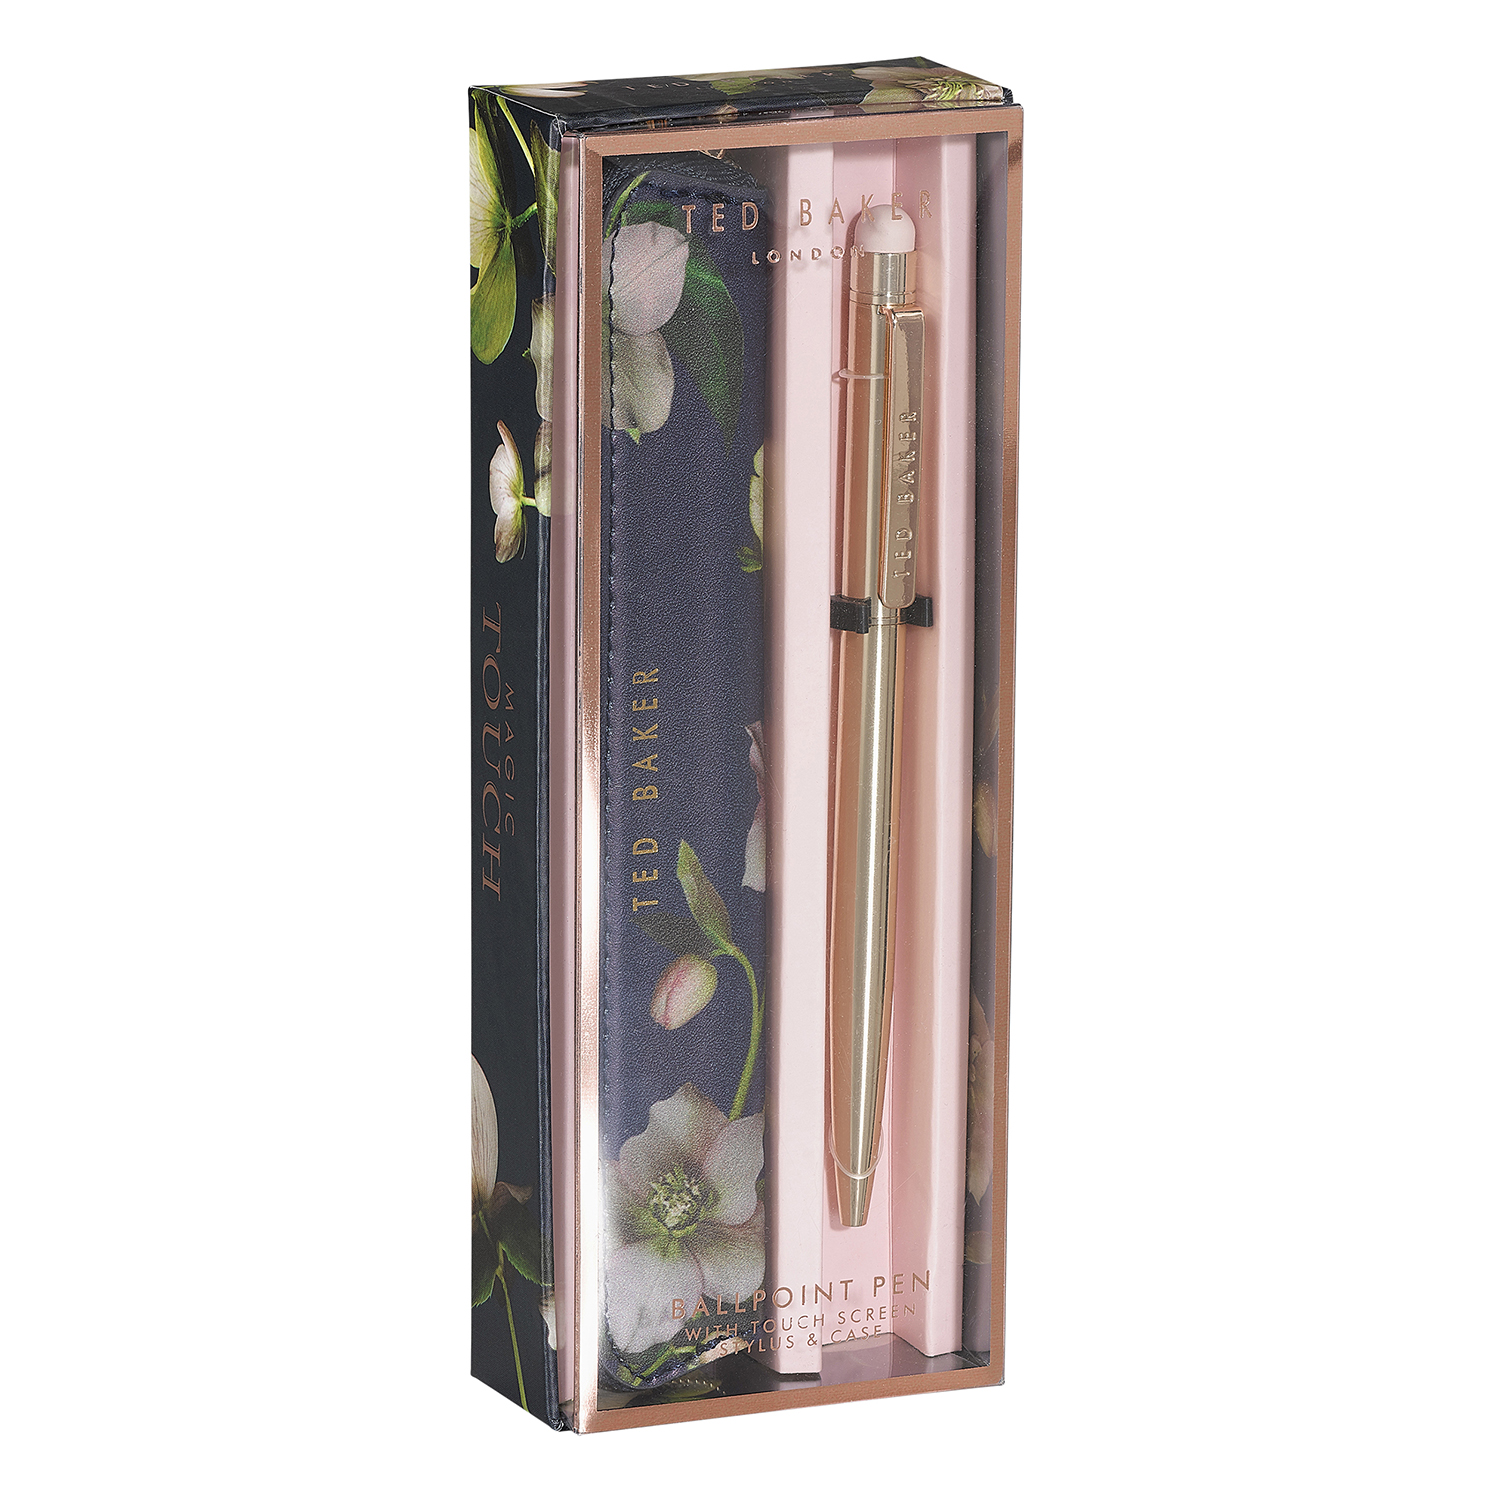 Ted Baker – Rose Gold Touchscreen Slim Pen with Arboretum Case in Gift Box